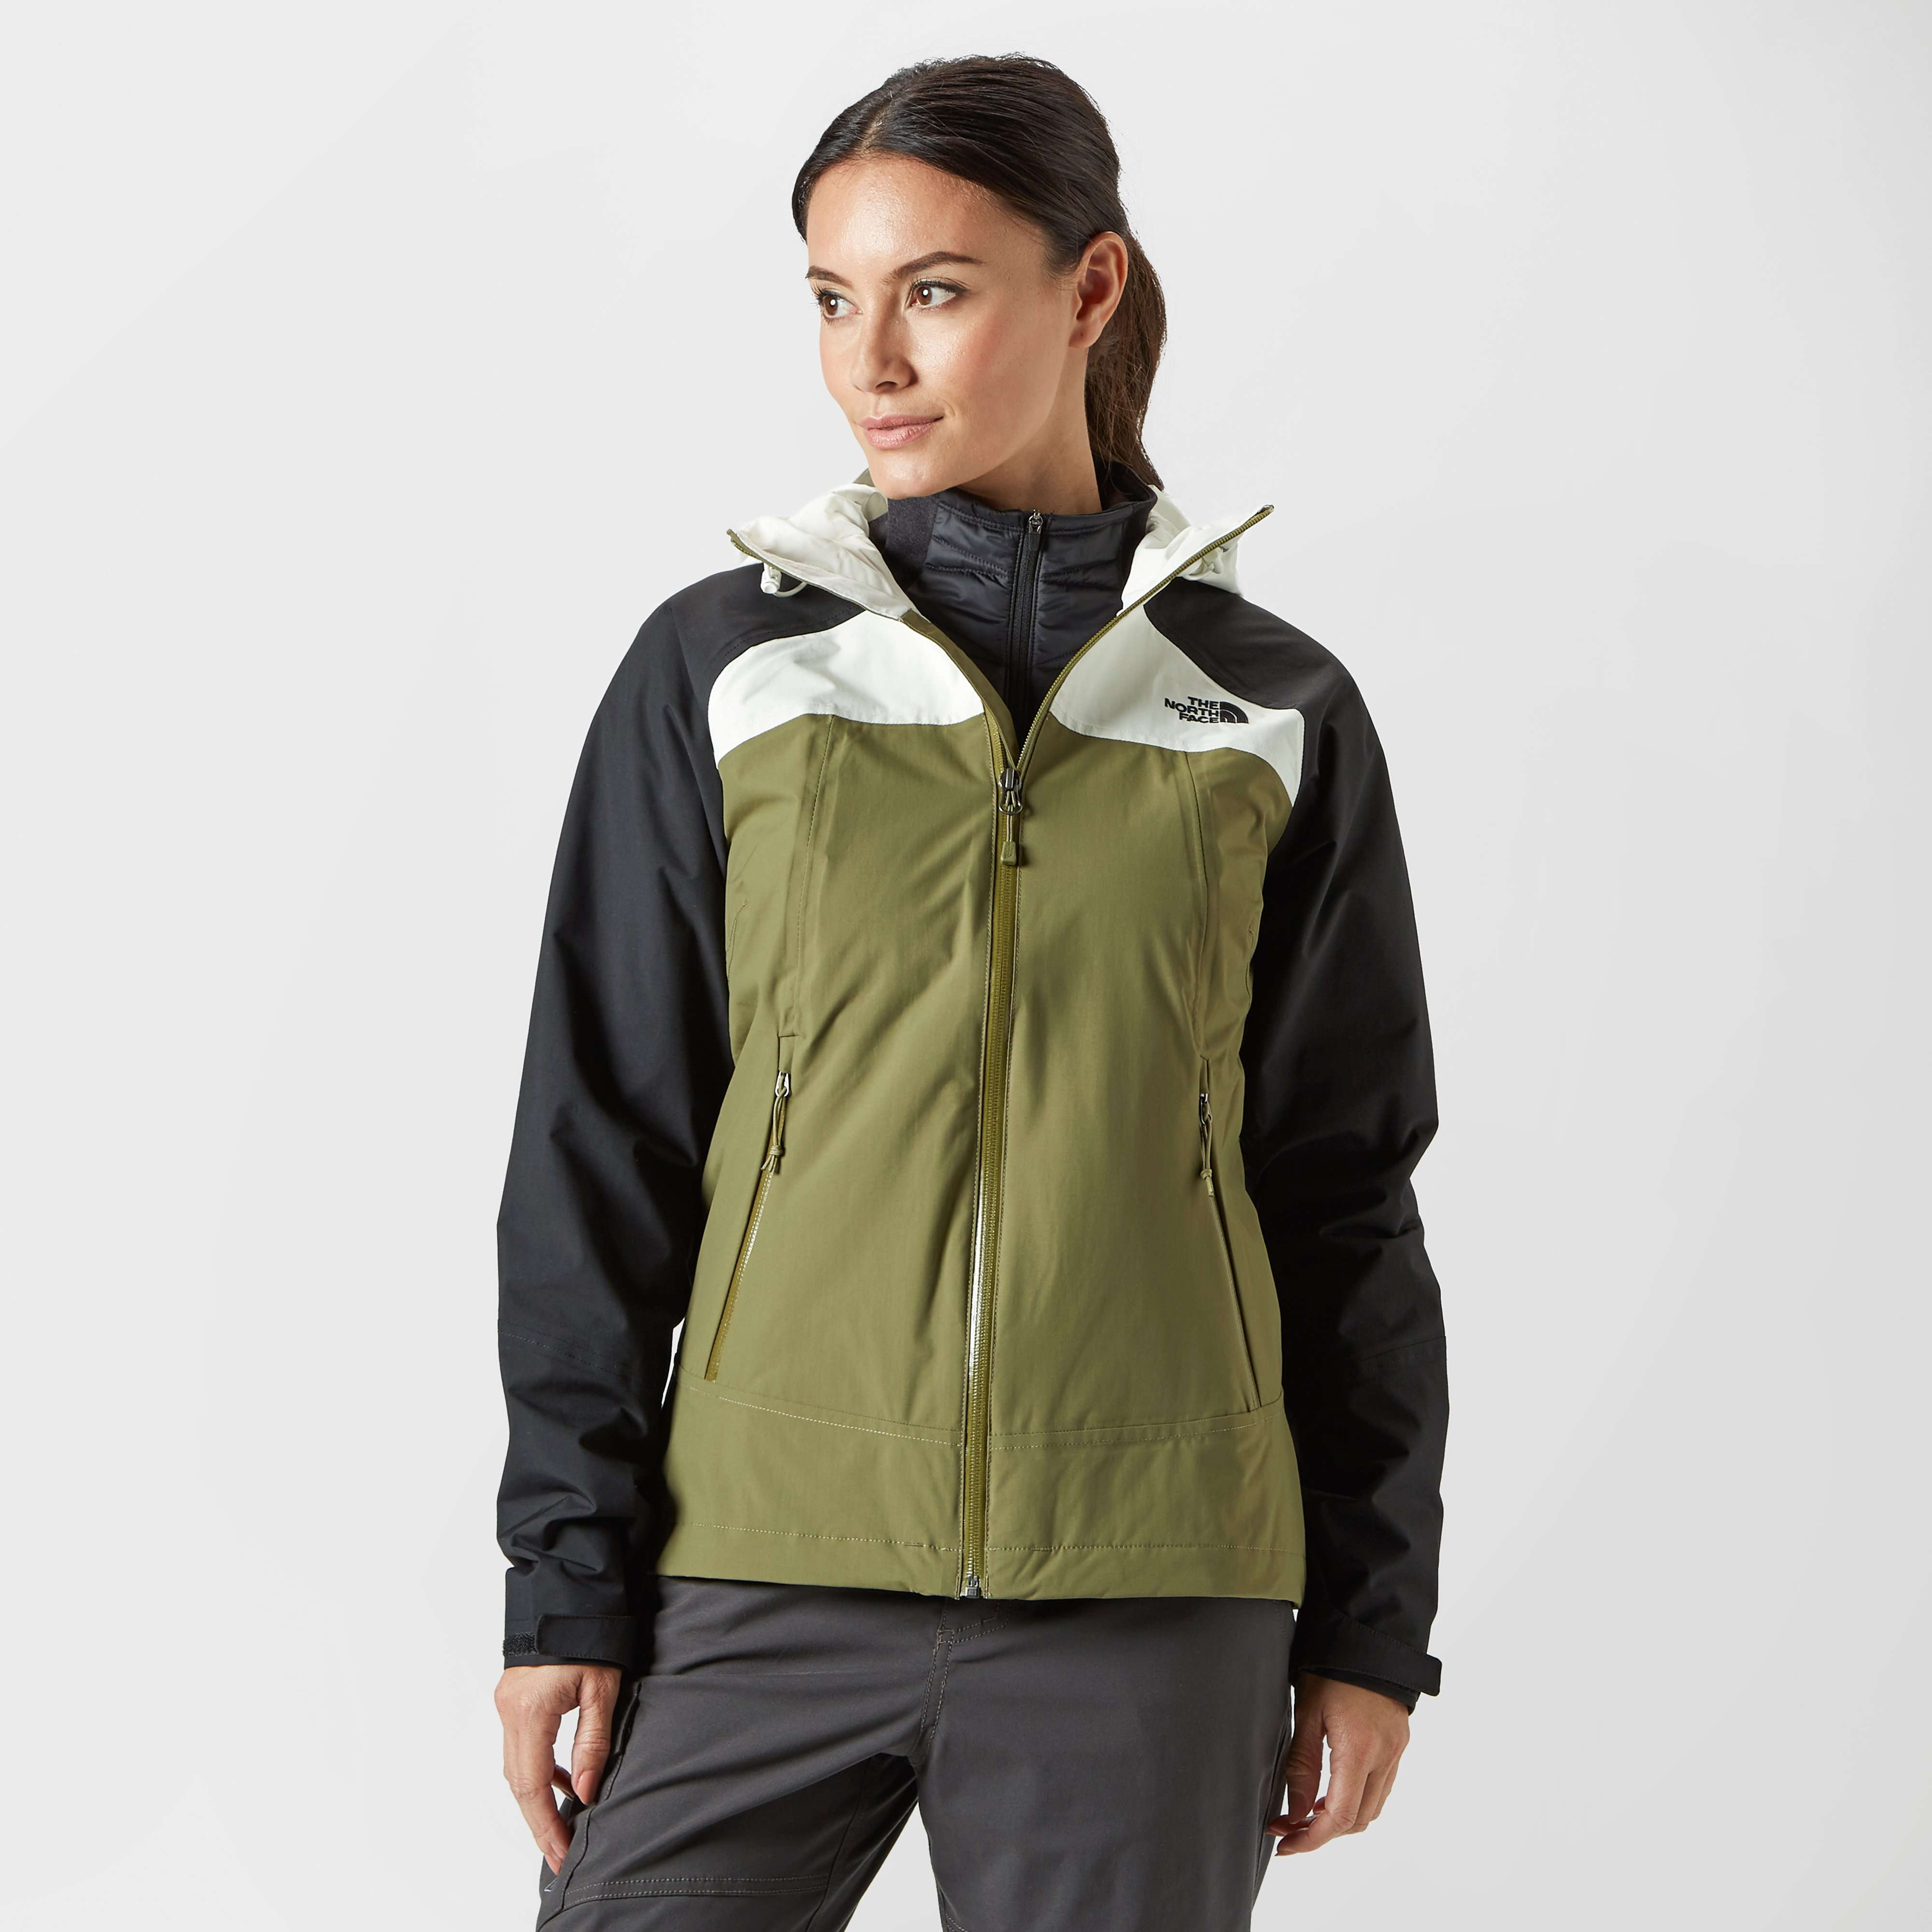 THE NORTH FACE Women's Stratos DryVent™ Jacket